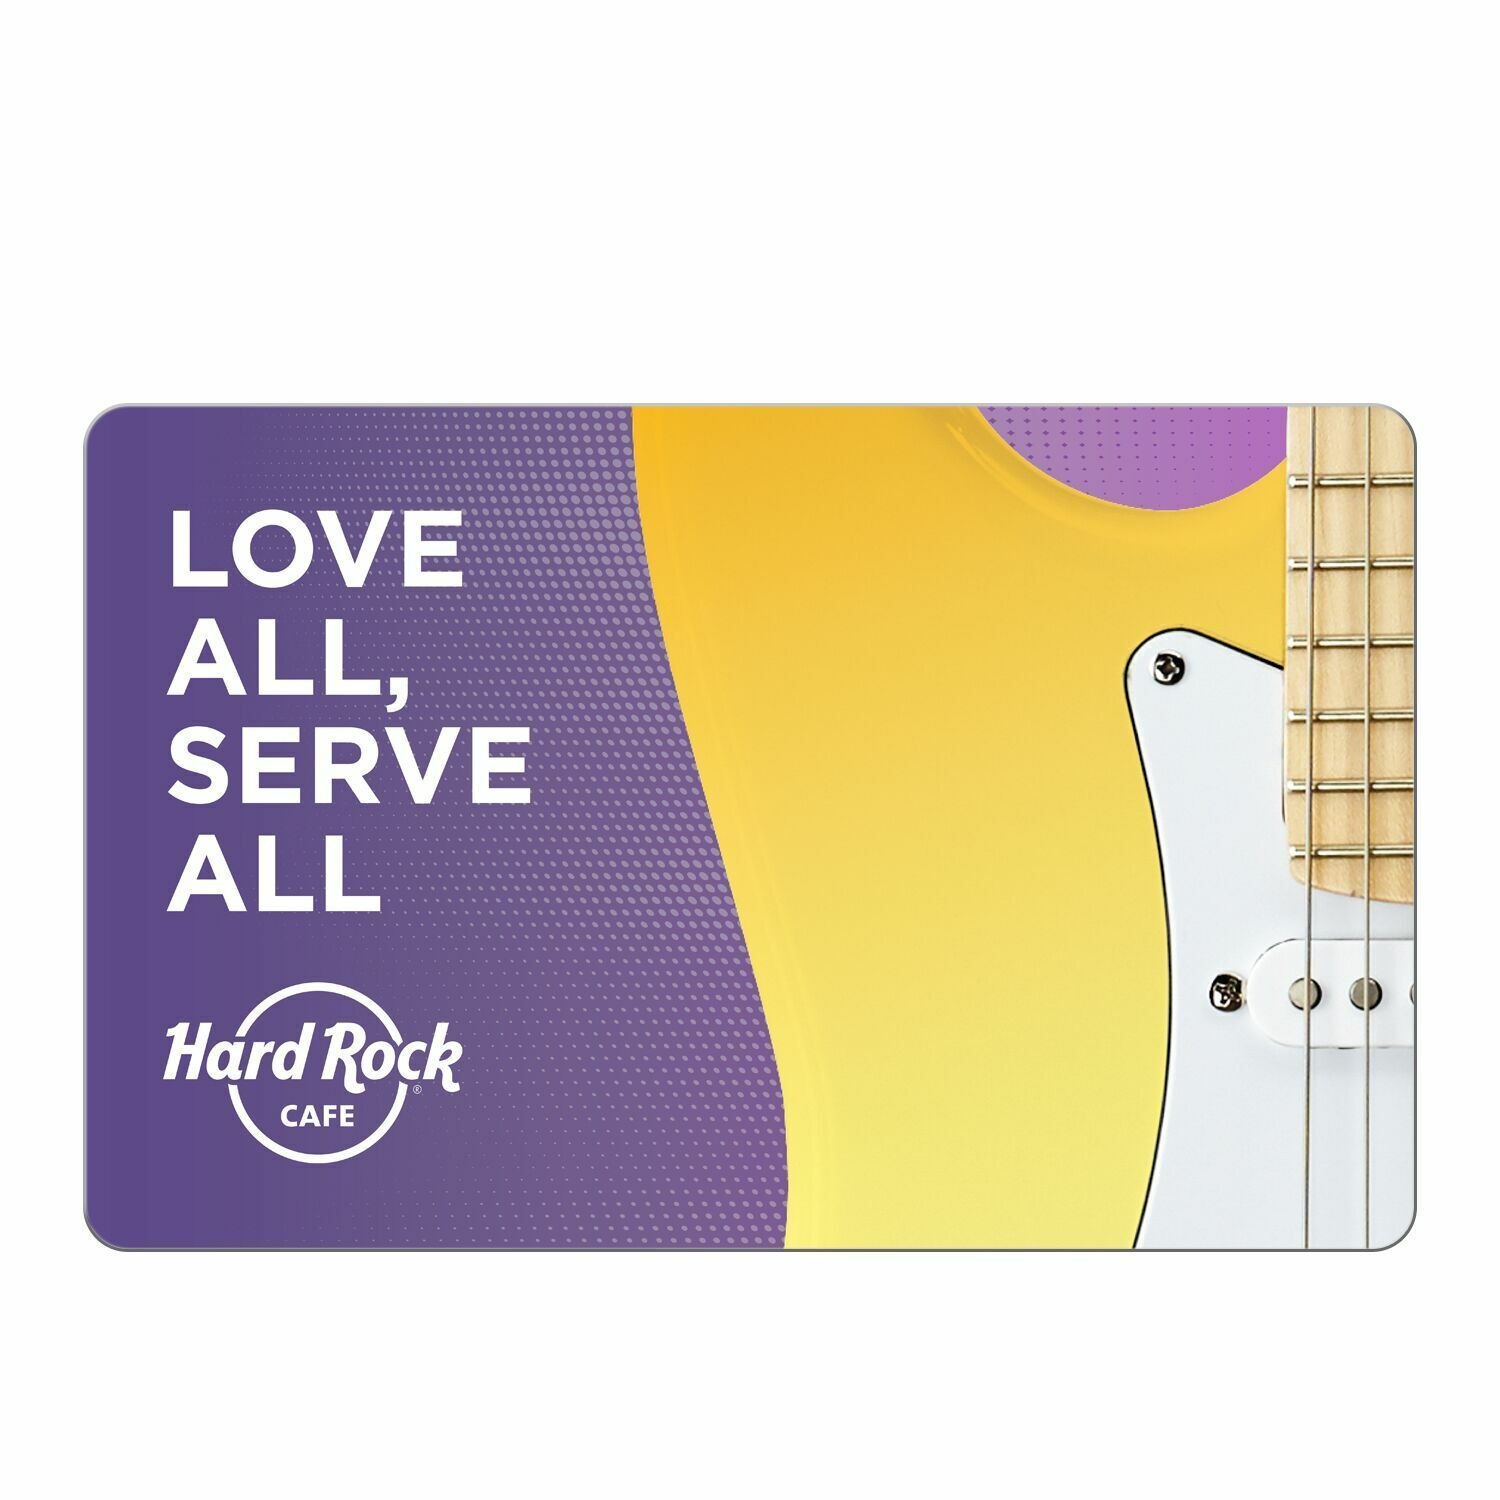 Hard Rock Cafe Gift Card - 25 50 100 - Email Delivery  - $25.00